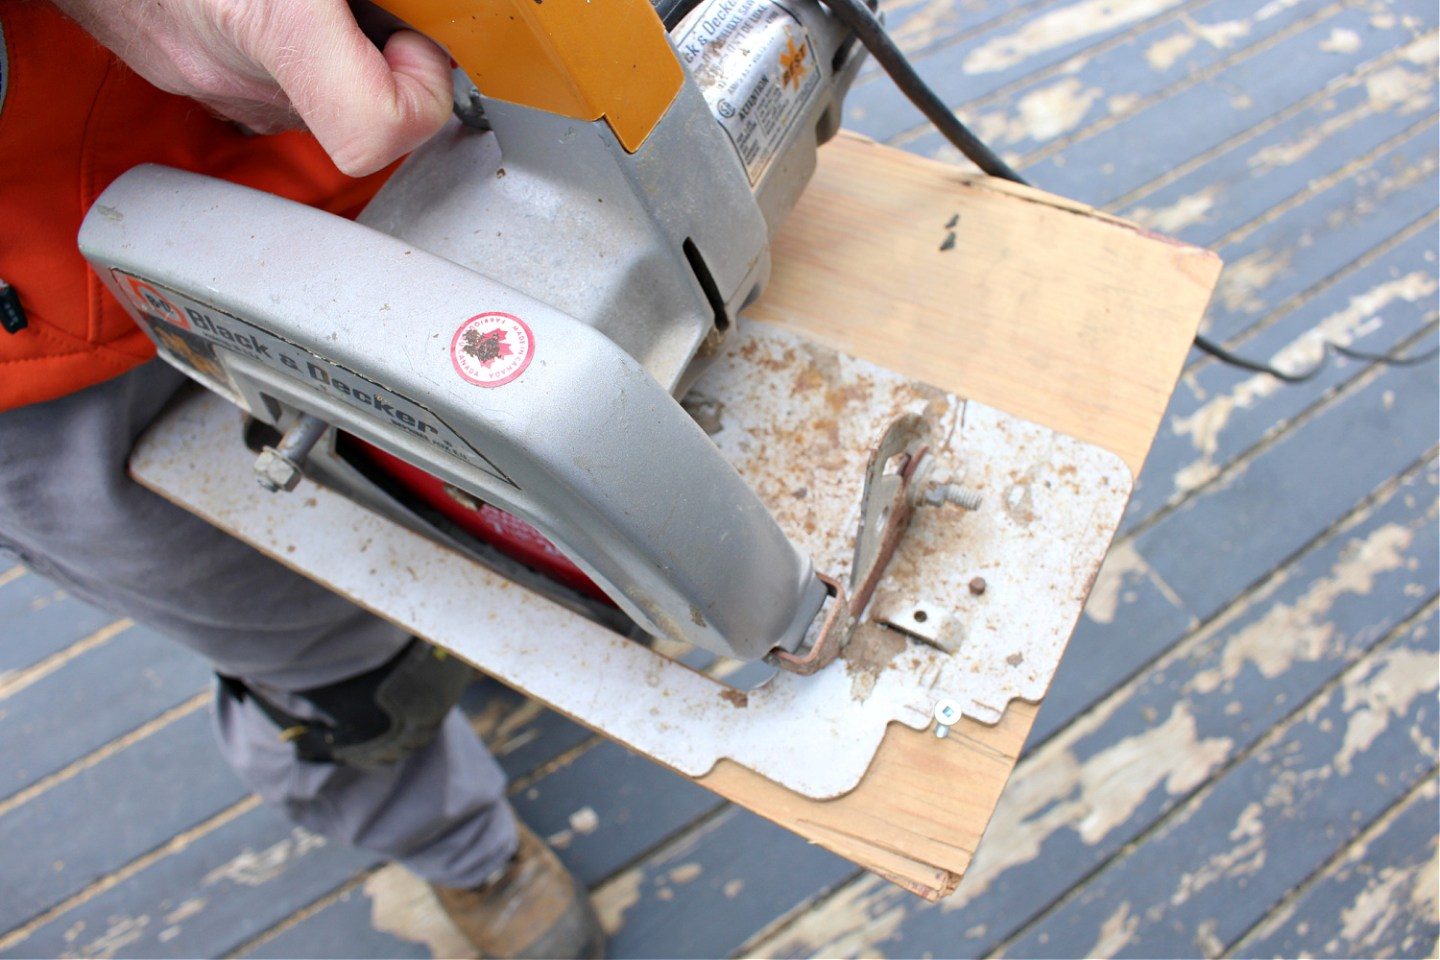 DIY Saw Guide to Widen Deck Boards